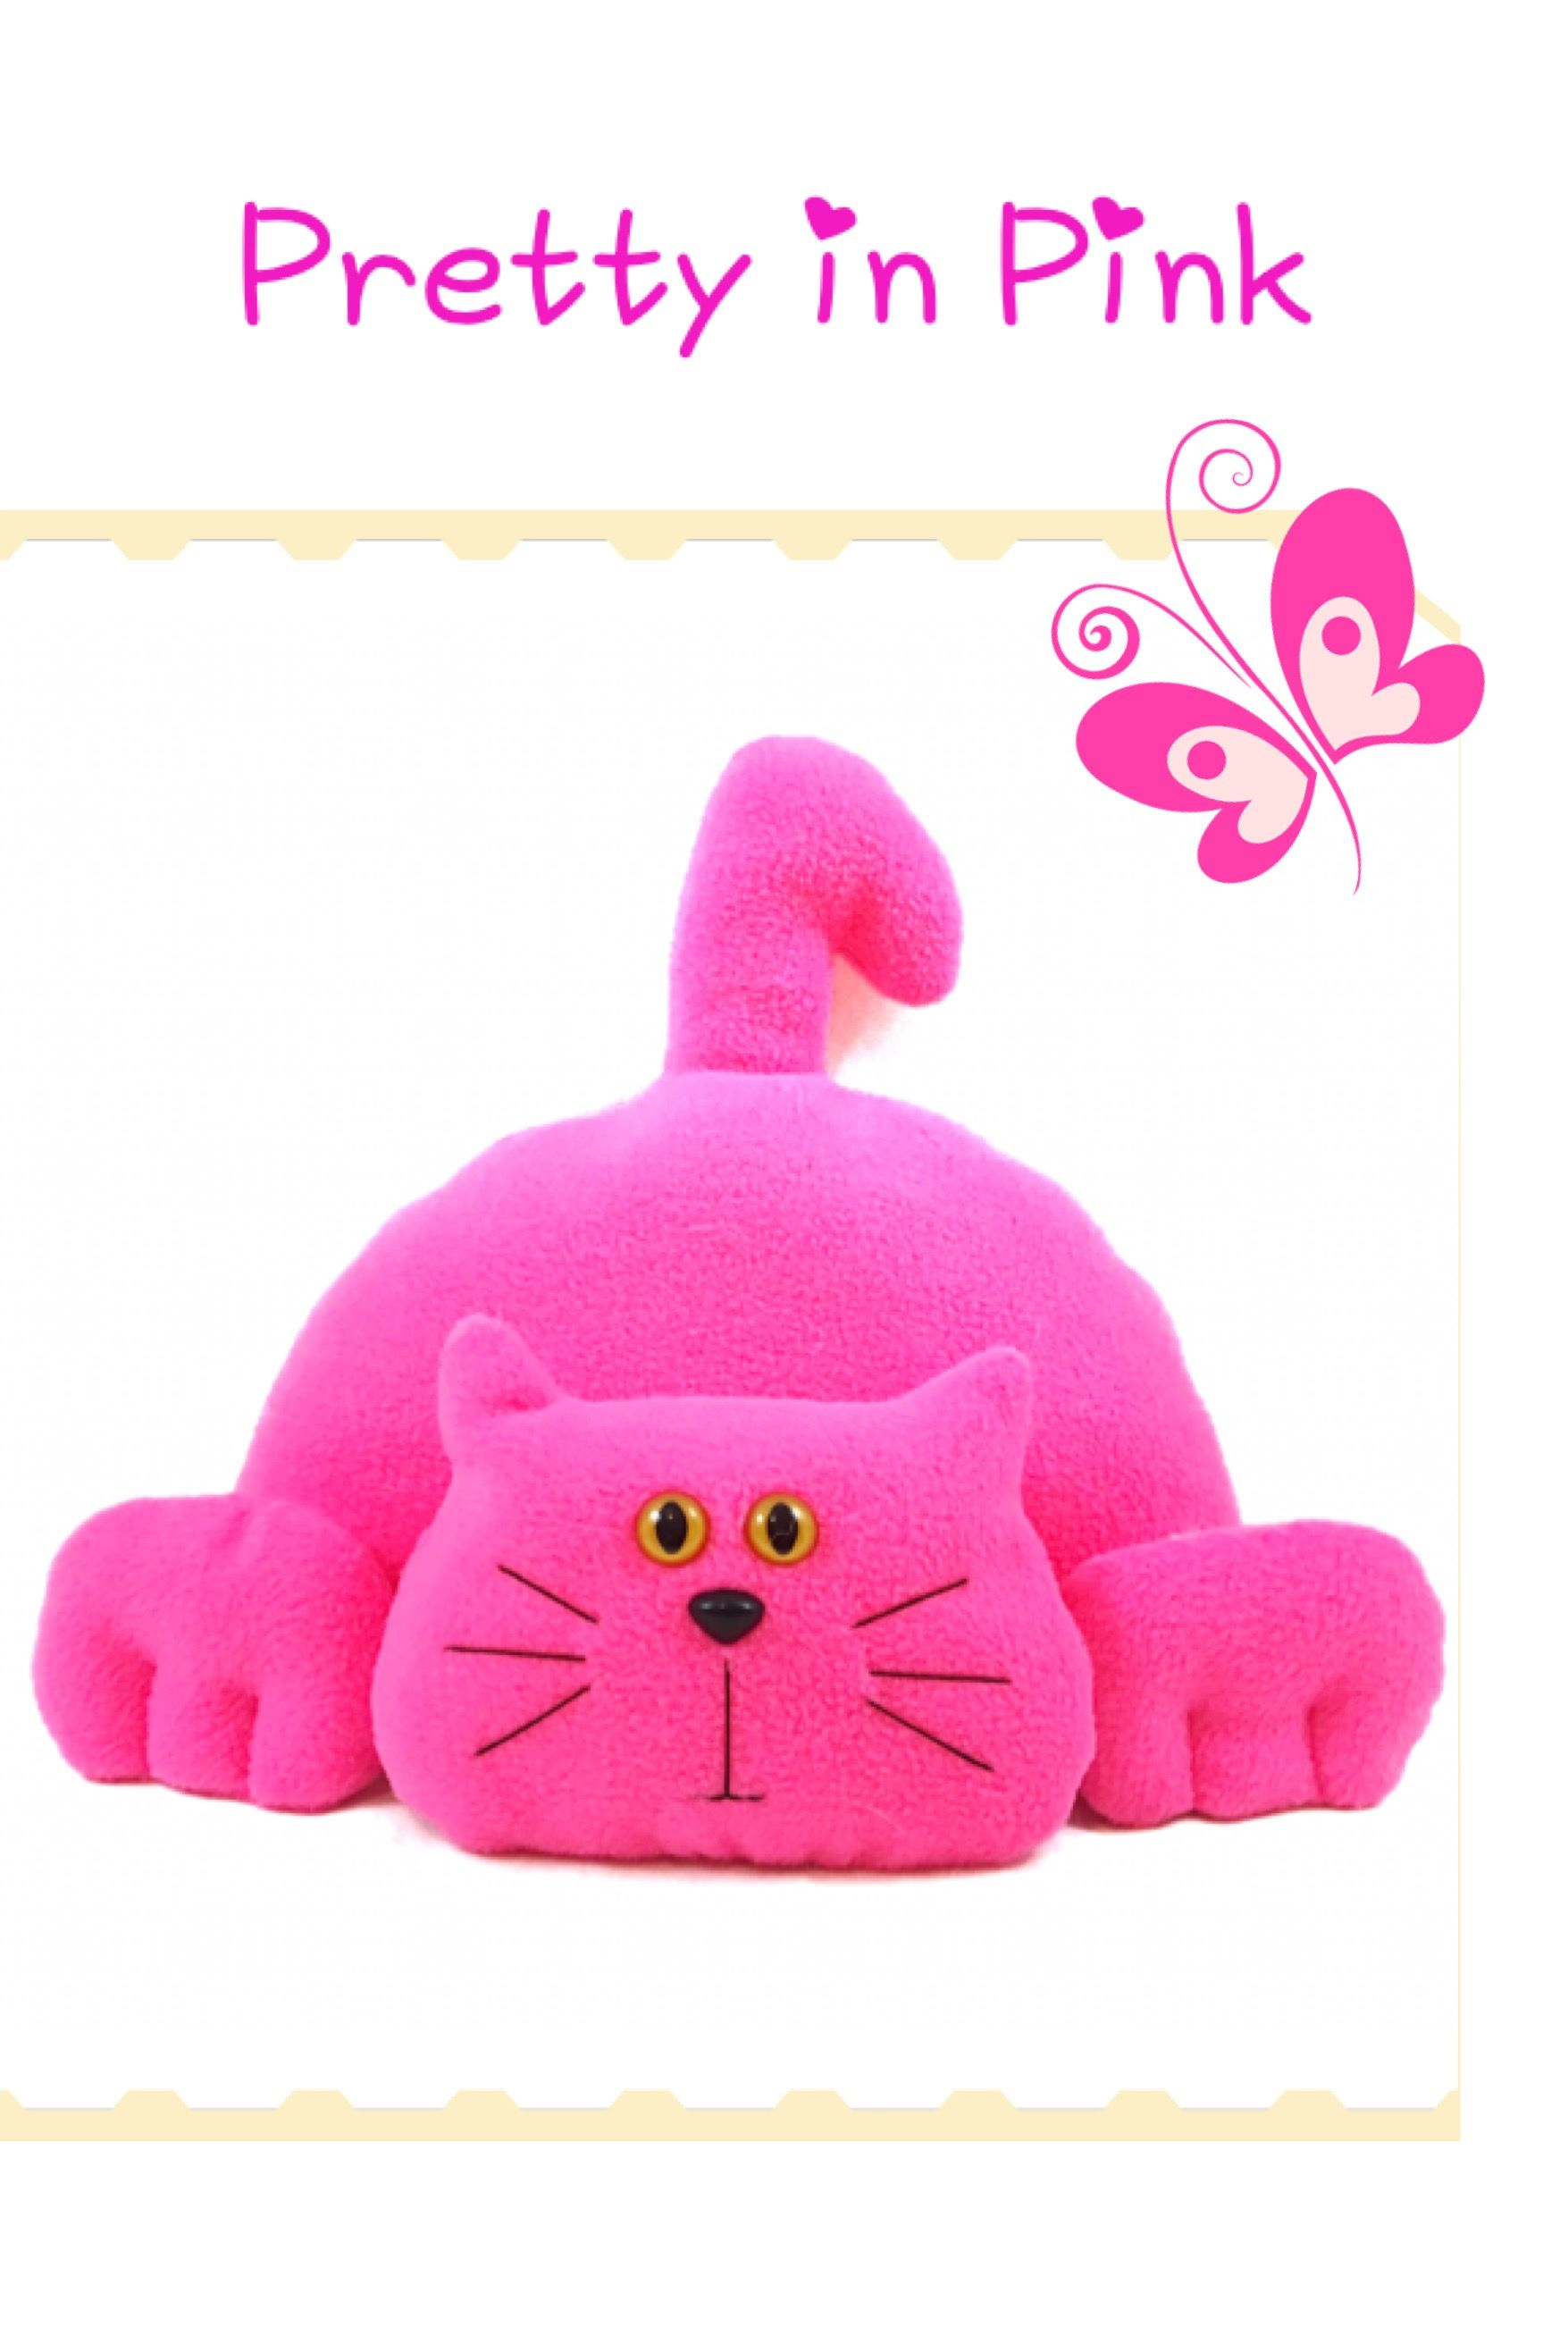 What color is your cat Fun cat stuffed animal pattern